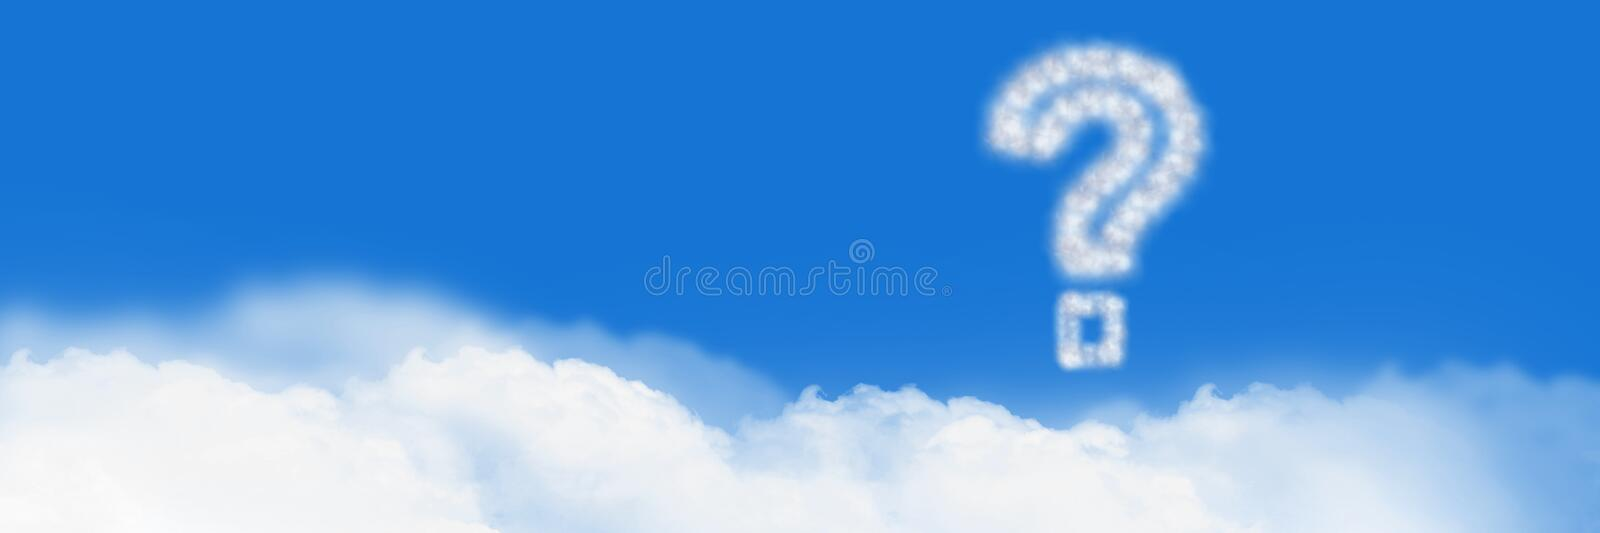 Question mark Cloud Icon with sky royalty free stock photos